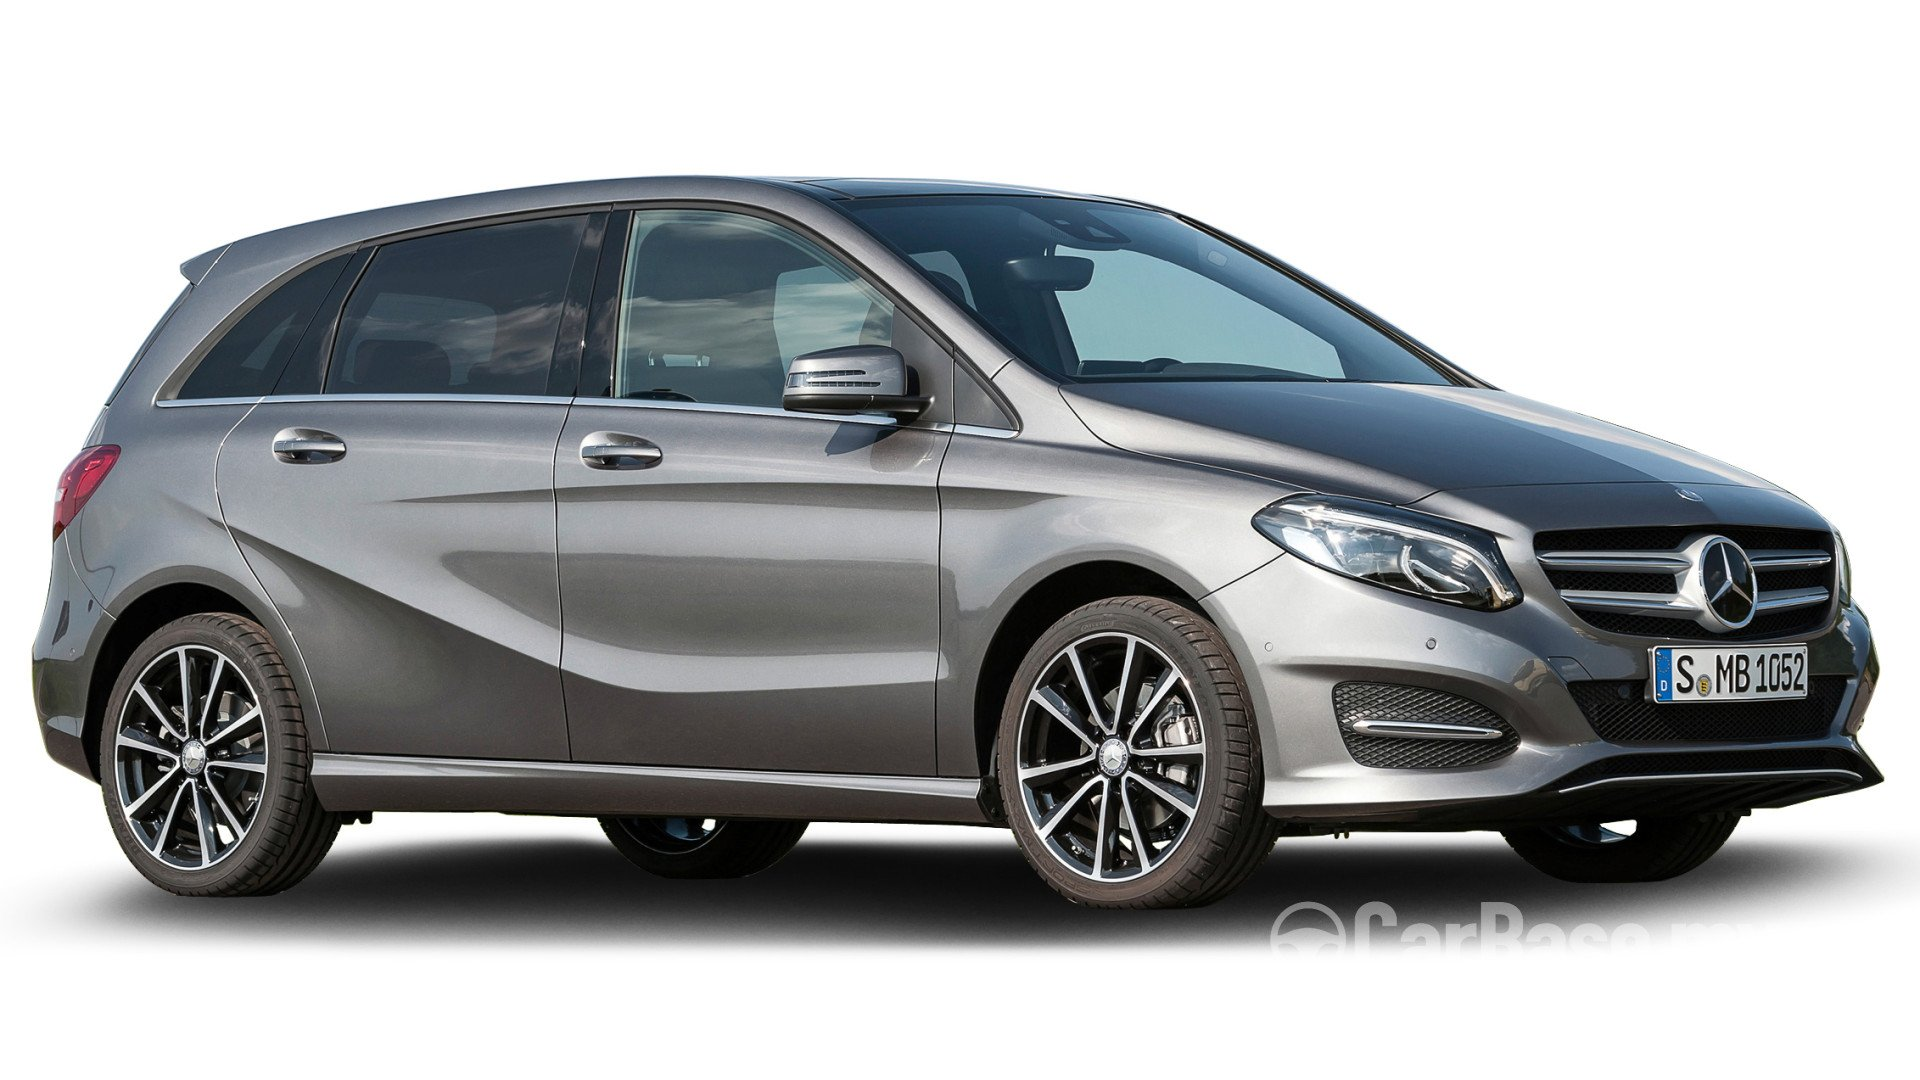 mercedes benz b class w246 facelift 2015 exterior image. Black Bedroom Furniture Sets. Home Design Ideas